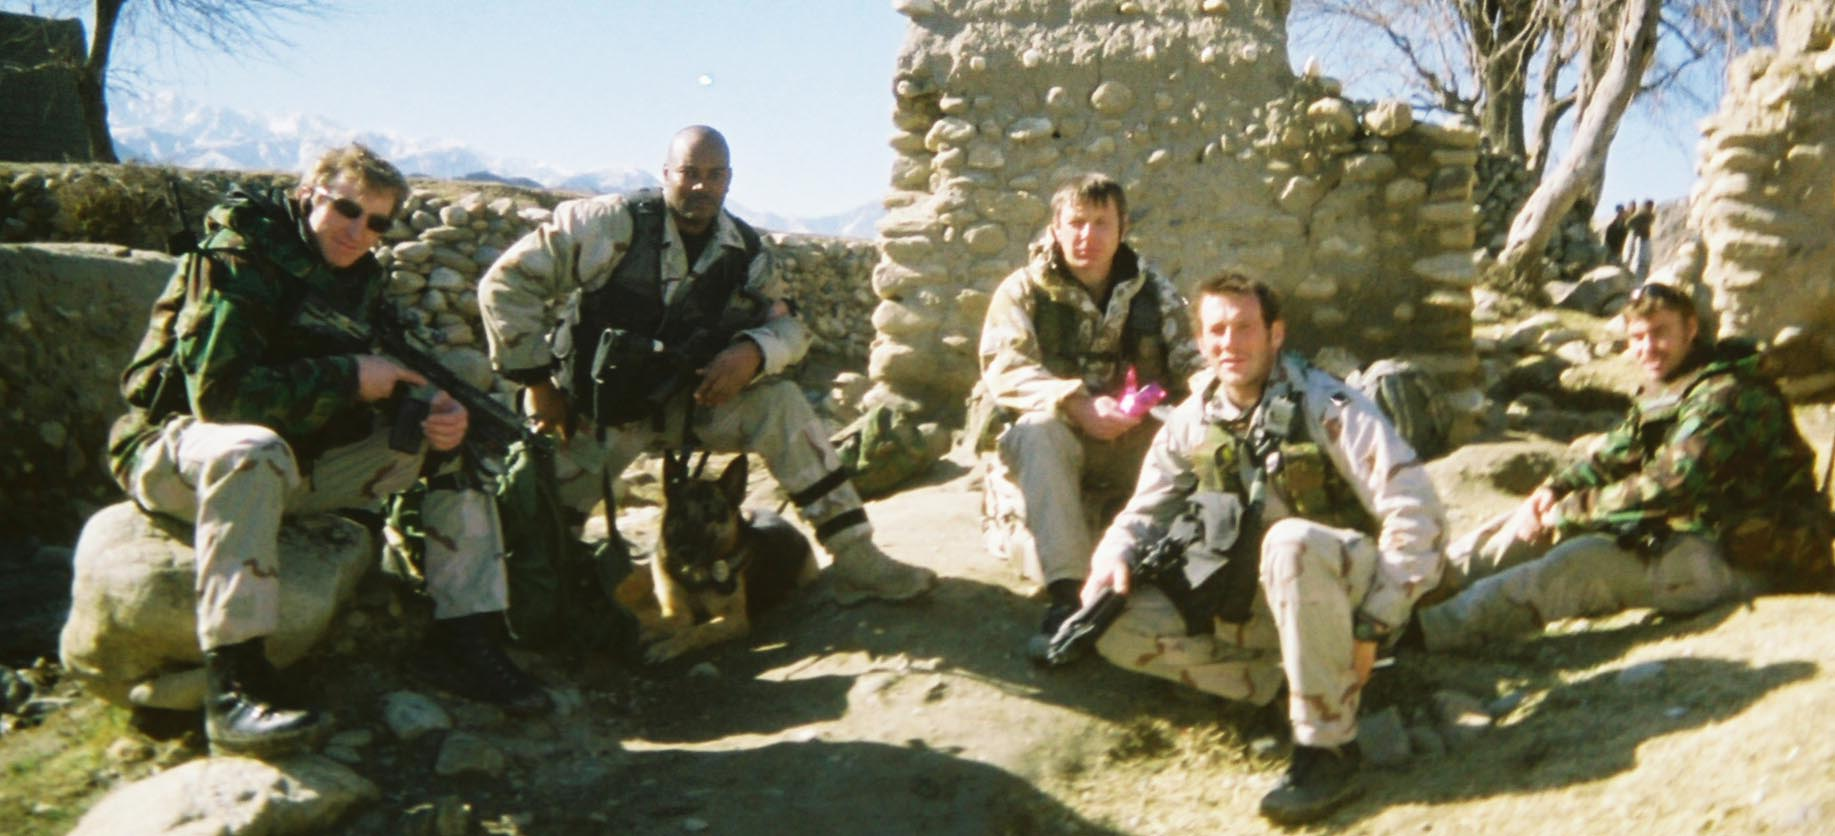 Chris Calloway & Rex with soldiers